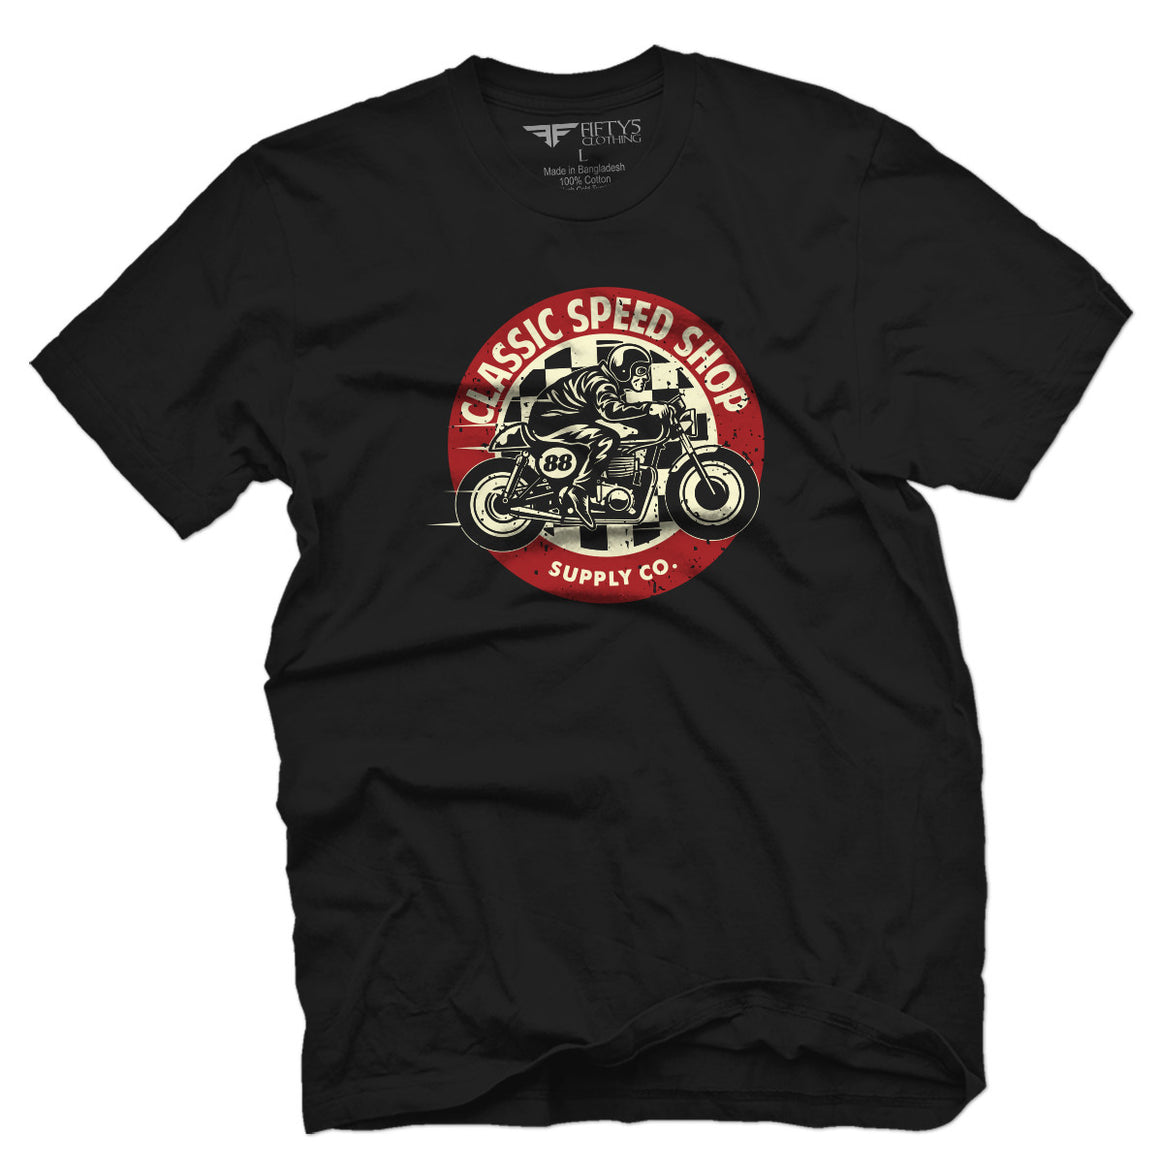 Fifty5 Clothing Classic Speed Shop Men's T Shirt